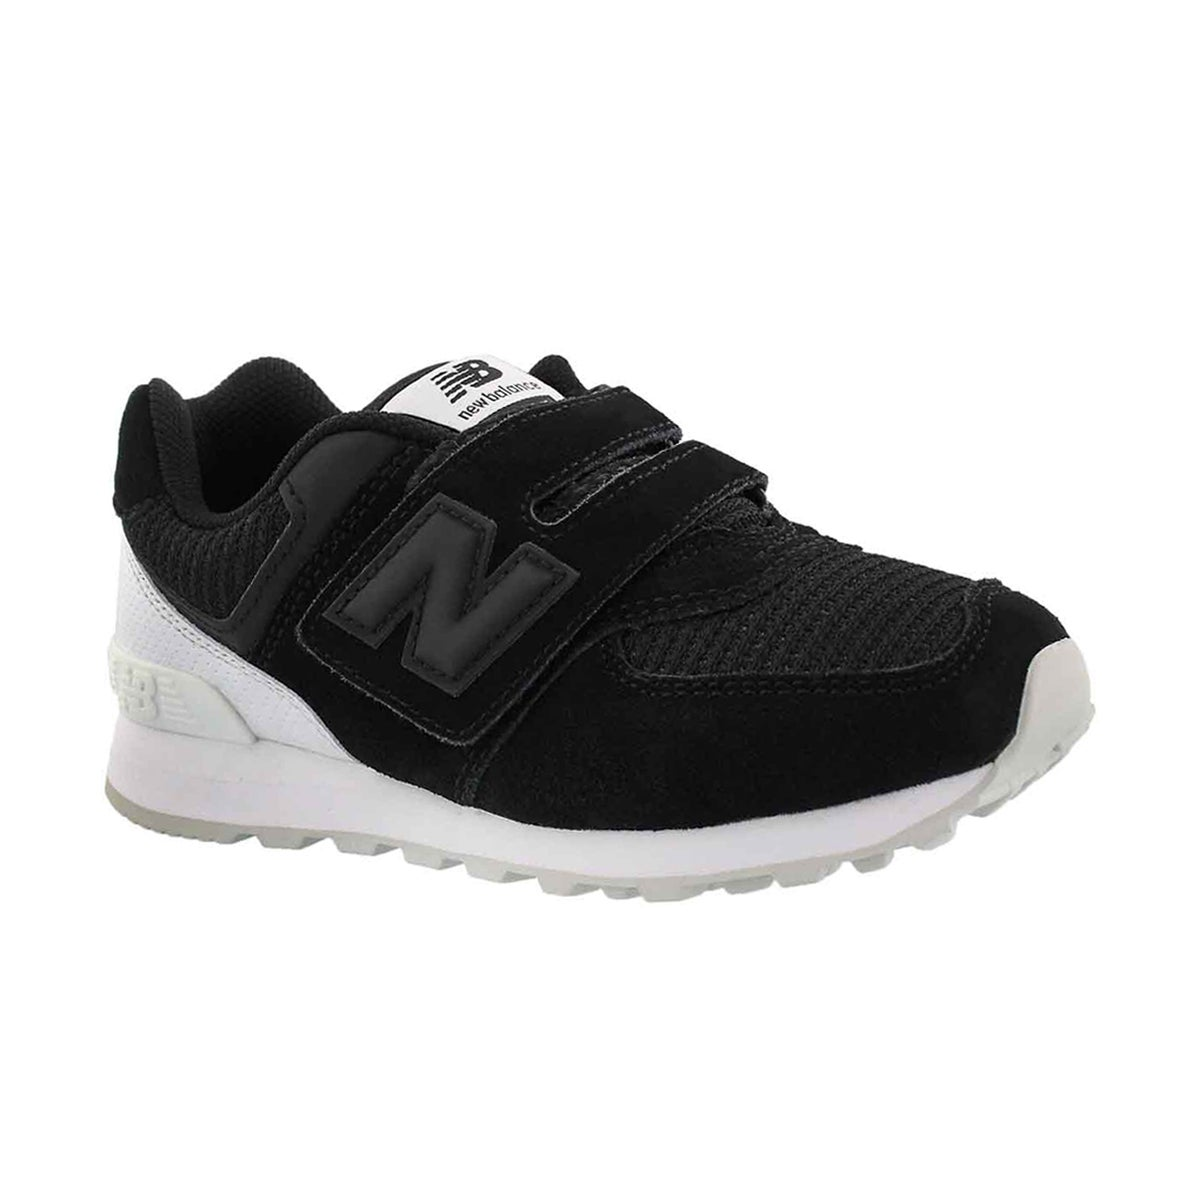 Boys' 574 black/white sneakers